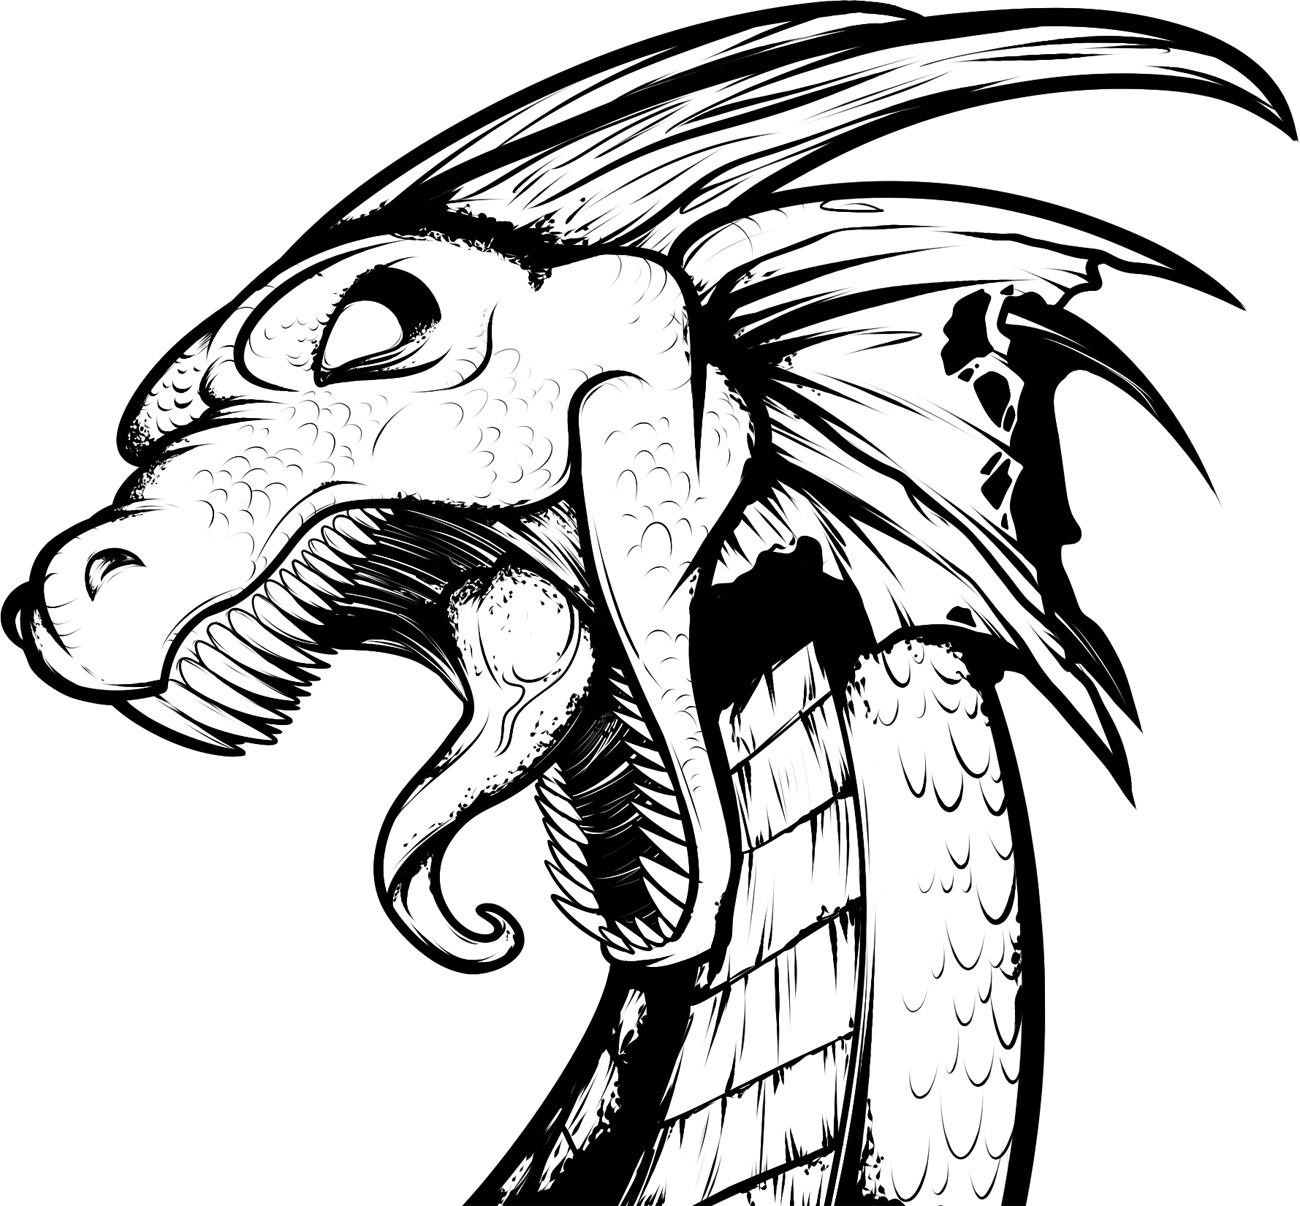 60 Awesome Dragon Tattoo Designs for Men